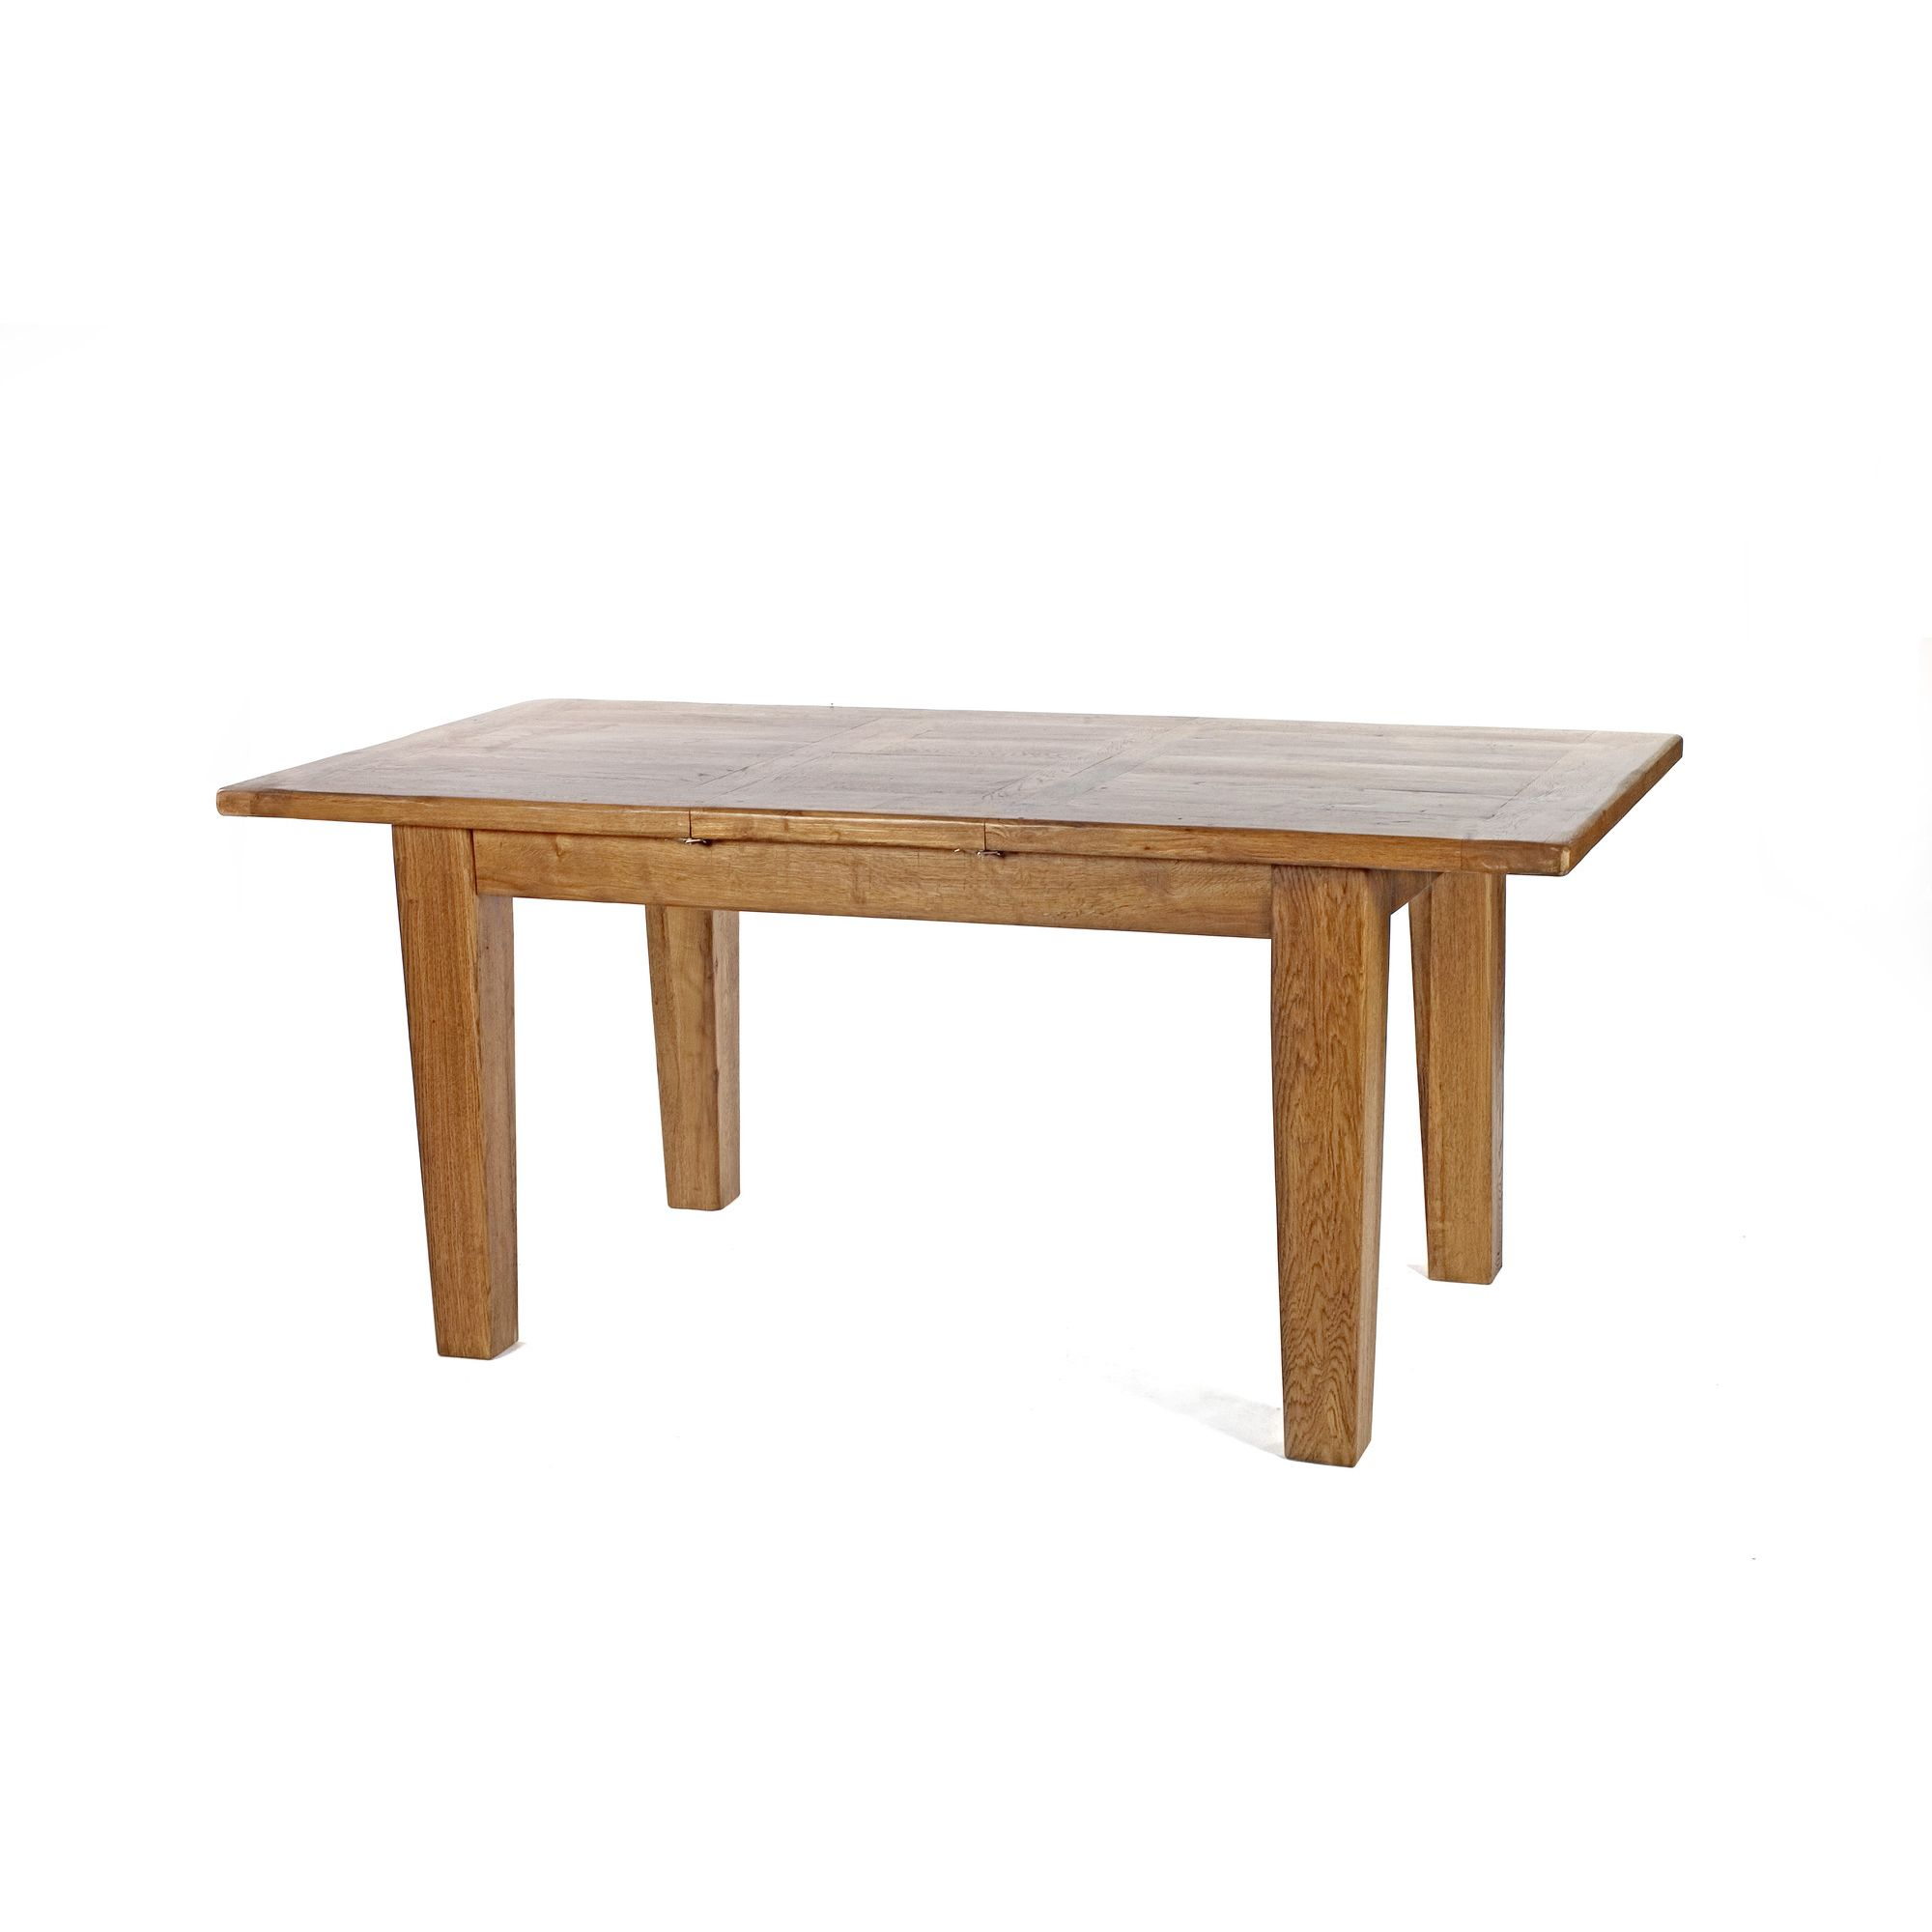 Wiseaction Florence Extension Solid Oak Dining Table - 254cm x 112cm